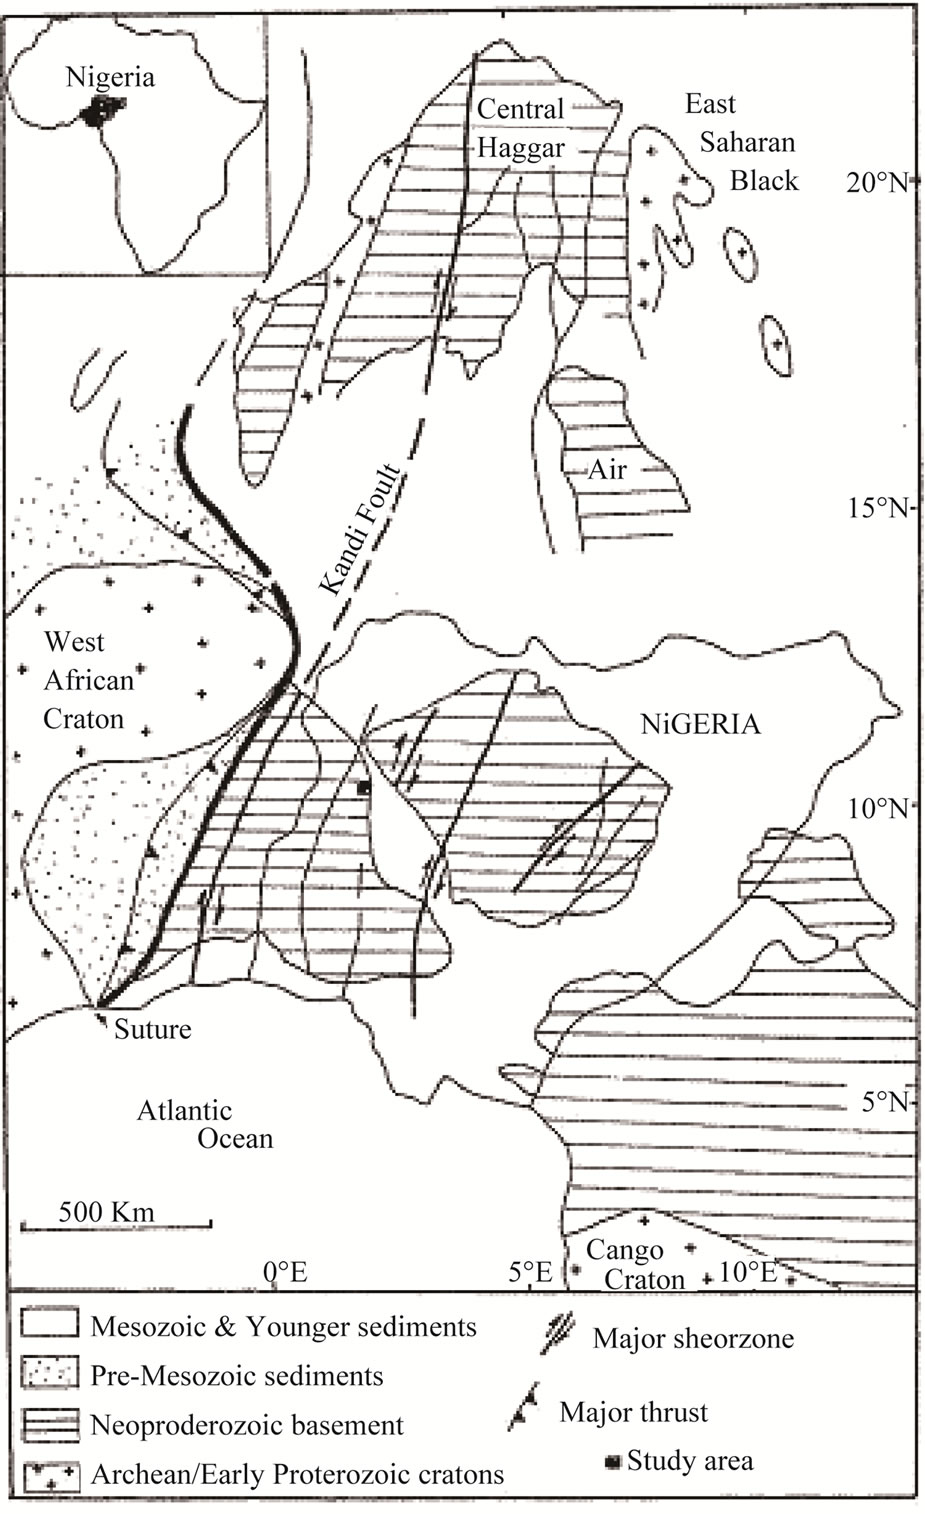 U-Pb Geochronology of the Jebba Granitic Gneiss and Its Implications